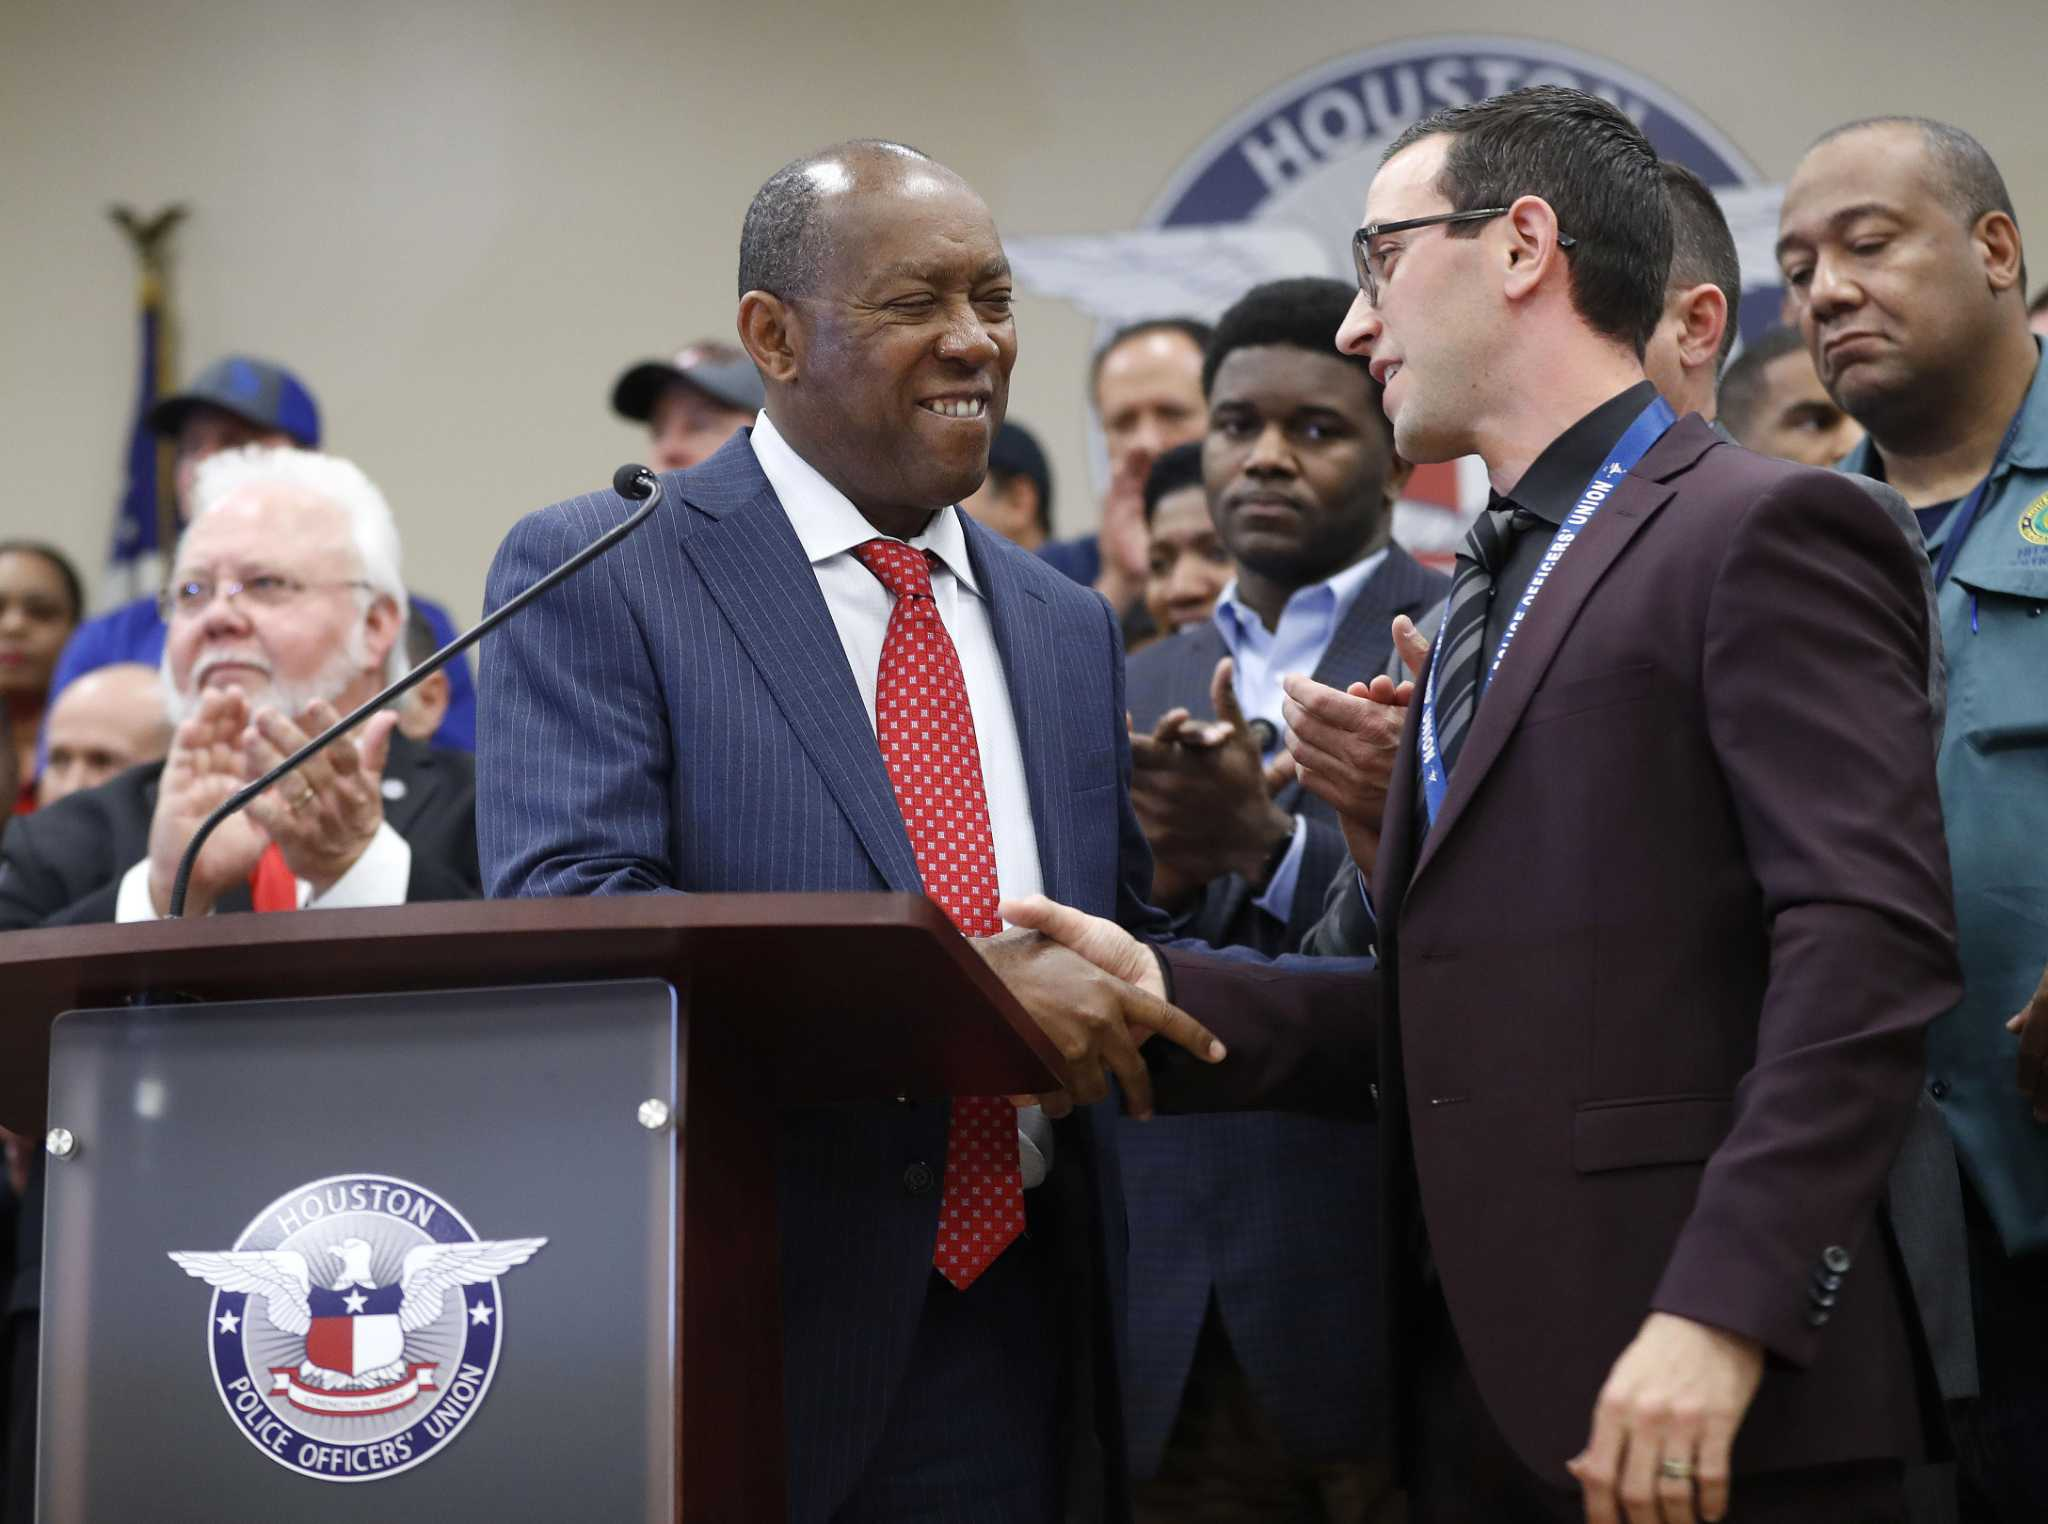 Turner touts union backing after AFL-CIO declines to endorse in mayor's race